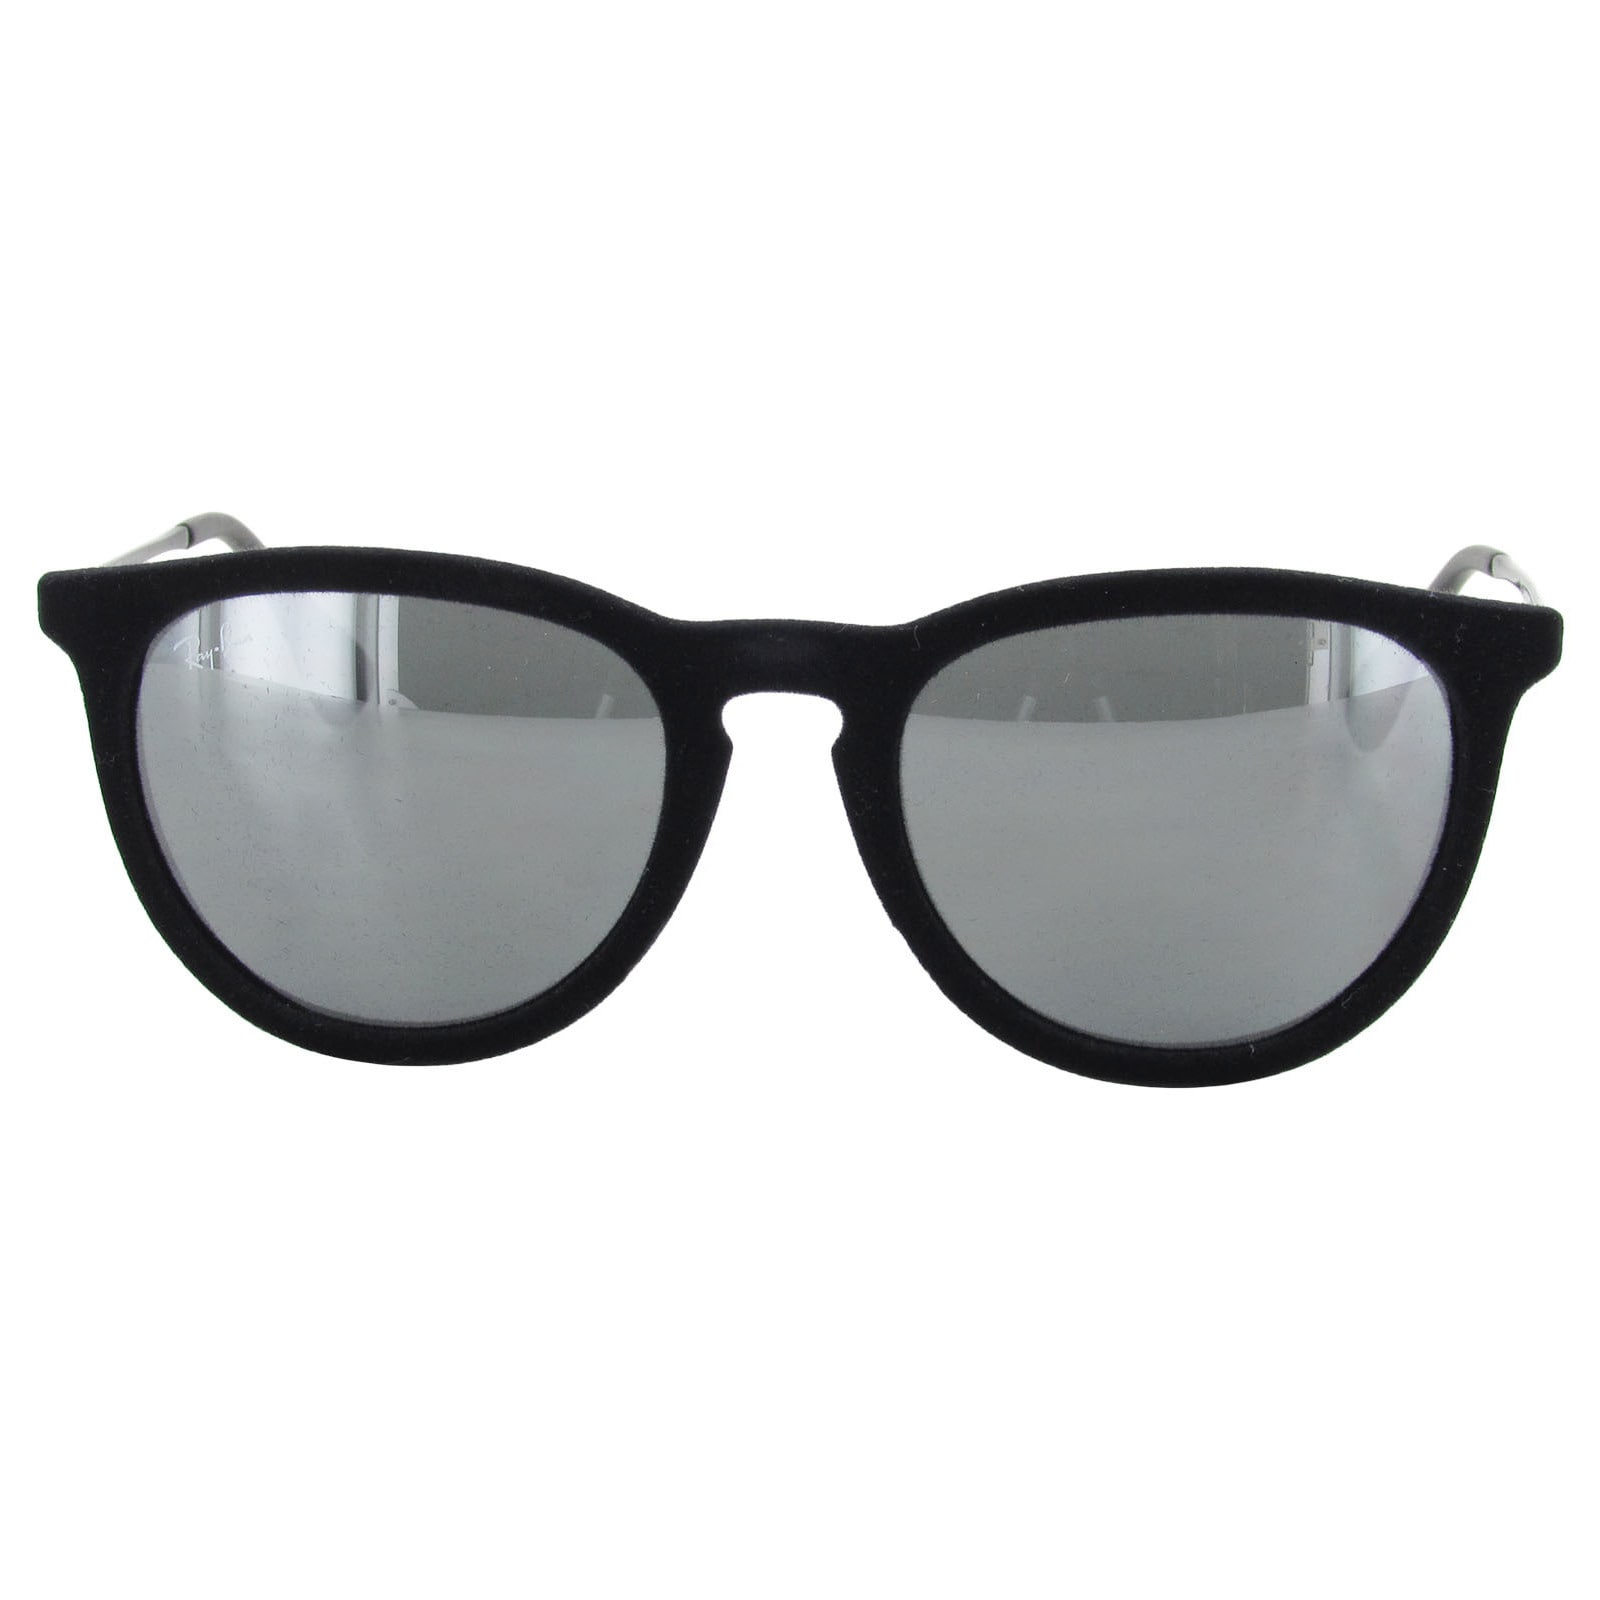 aad84fe1b7e Shop Ray-Ban Erika Oversized RB4171 Mens Black Frame Grey Lens Sunglasses - Free  Shipping Today - Overstock - 20121156